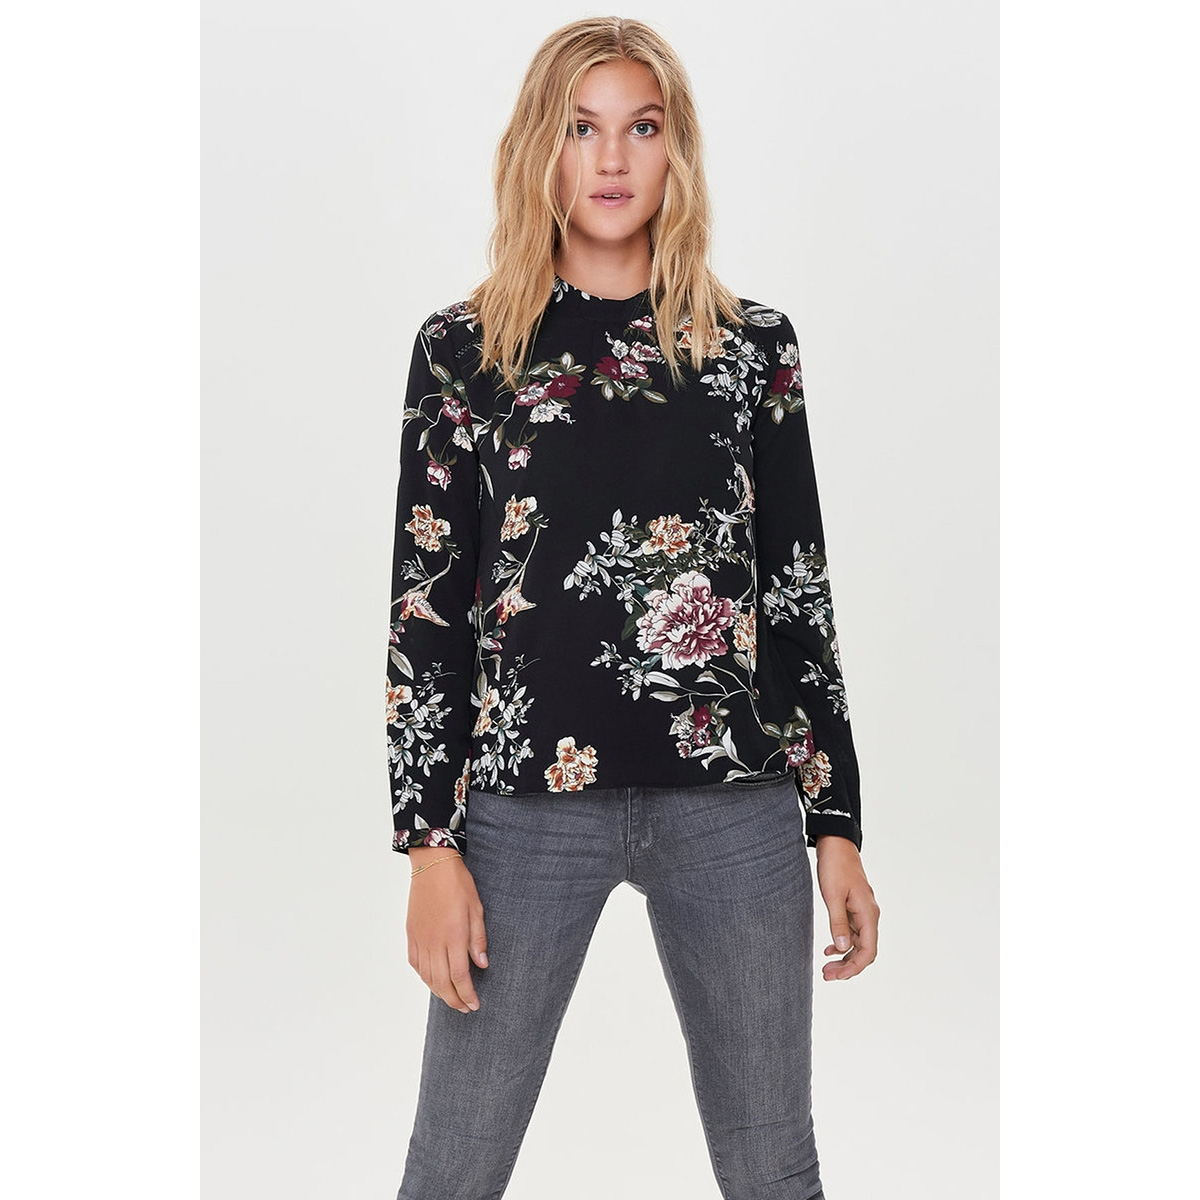 onlnew mallory  aop l/s blouse wvn 15154629 only blouse black/cd flowers